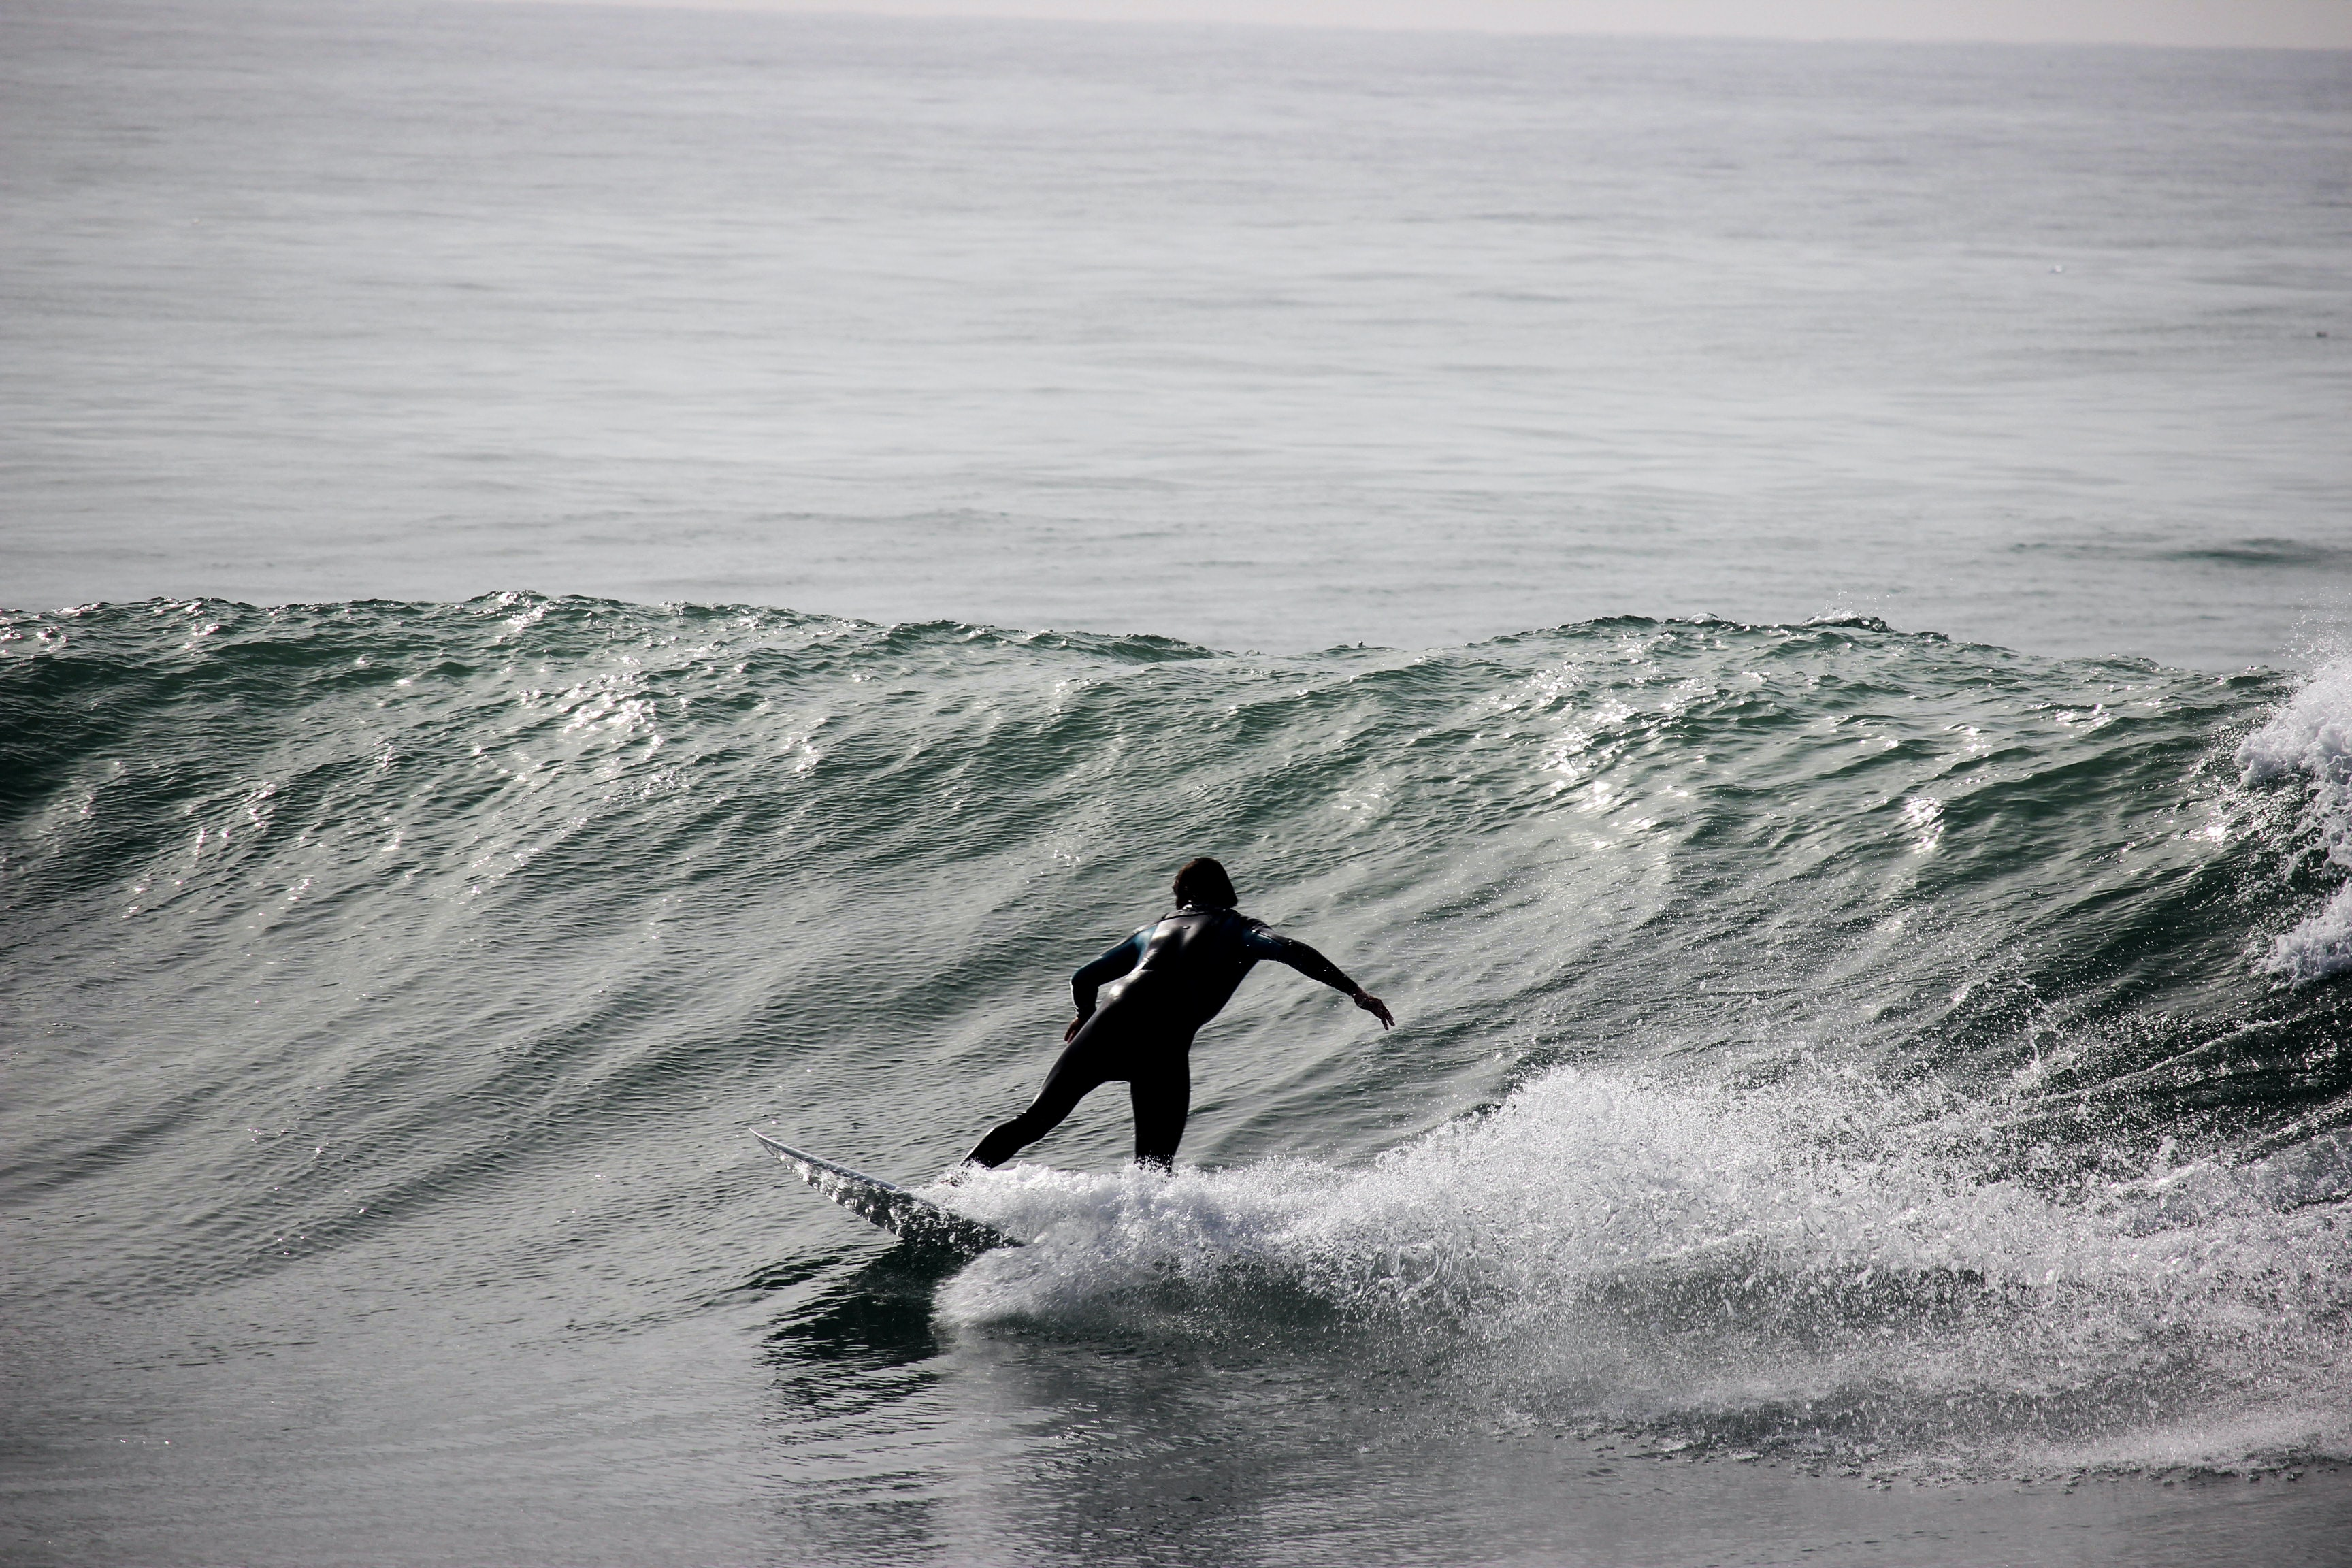 grayscale photography of surfer on body of water during daytime